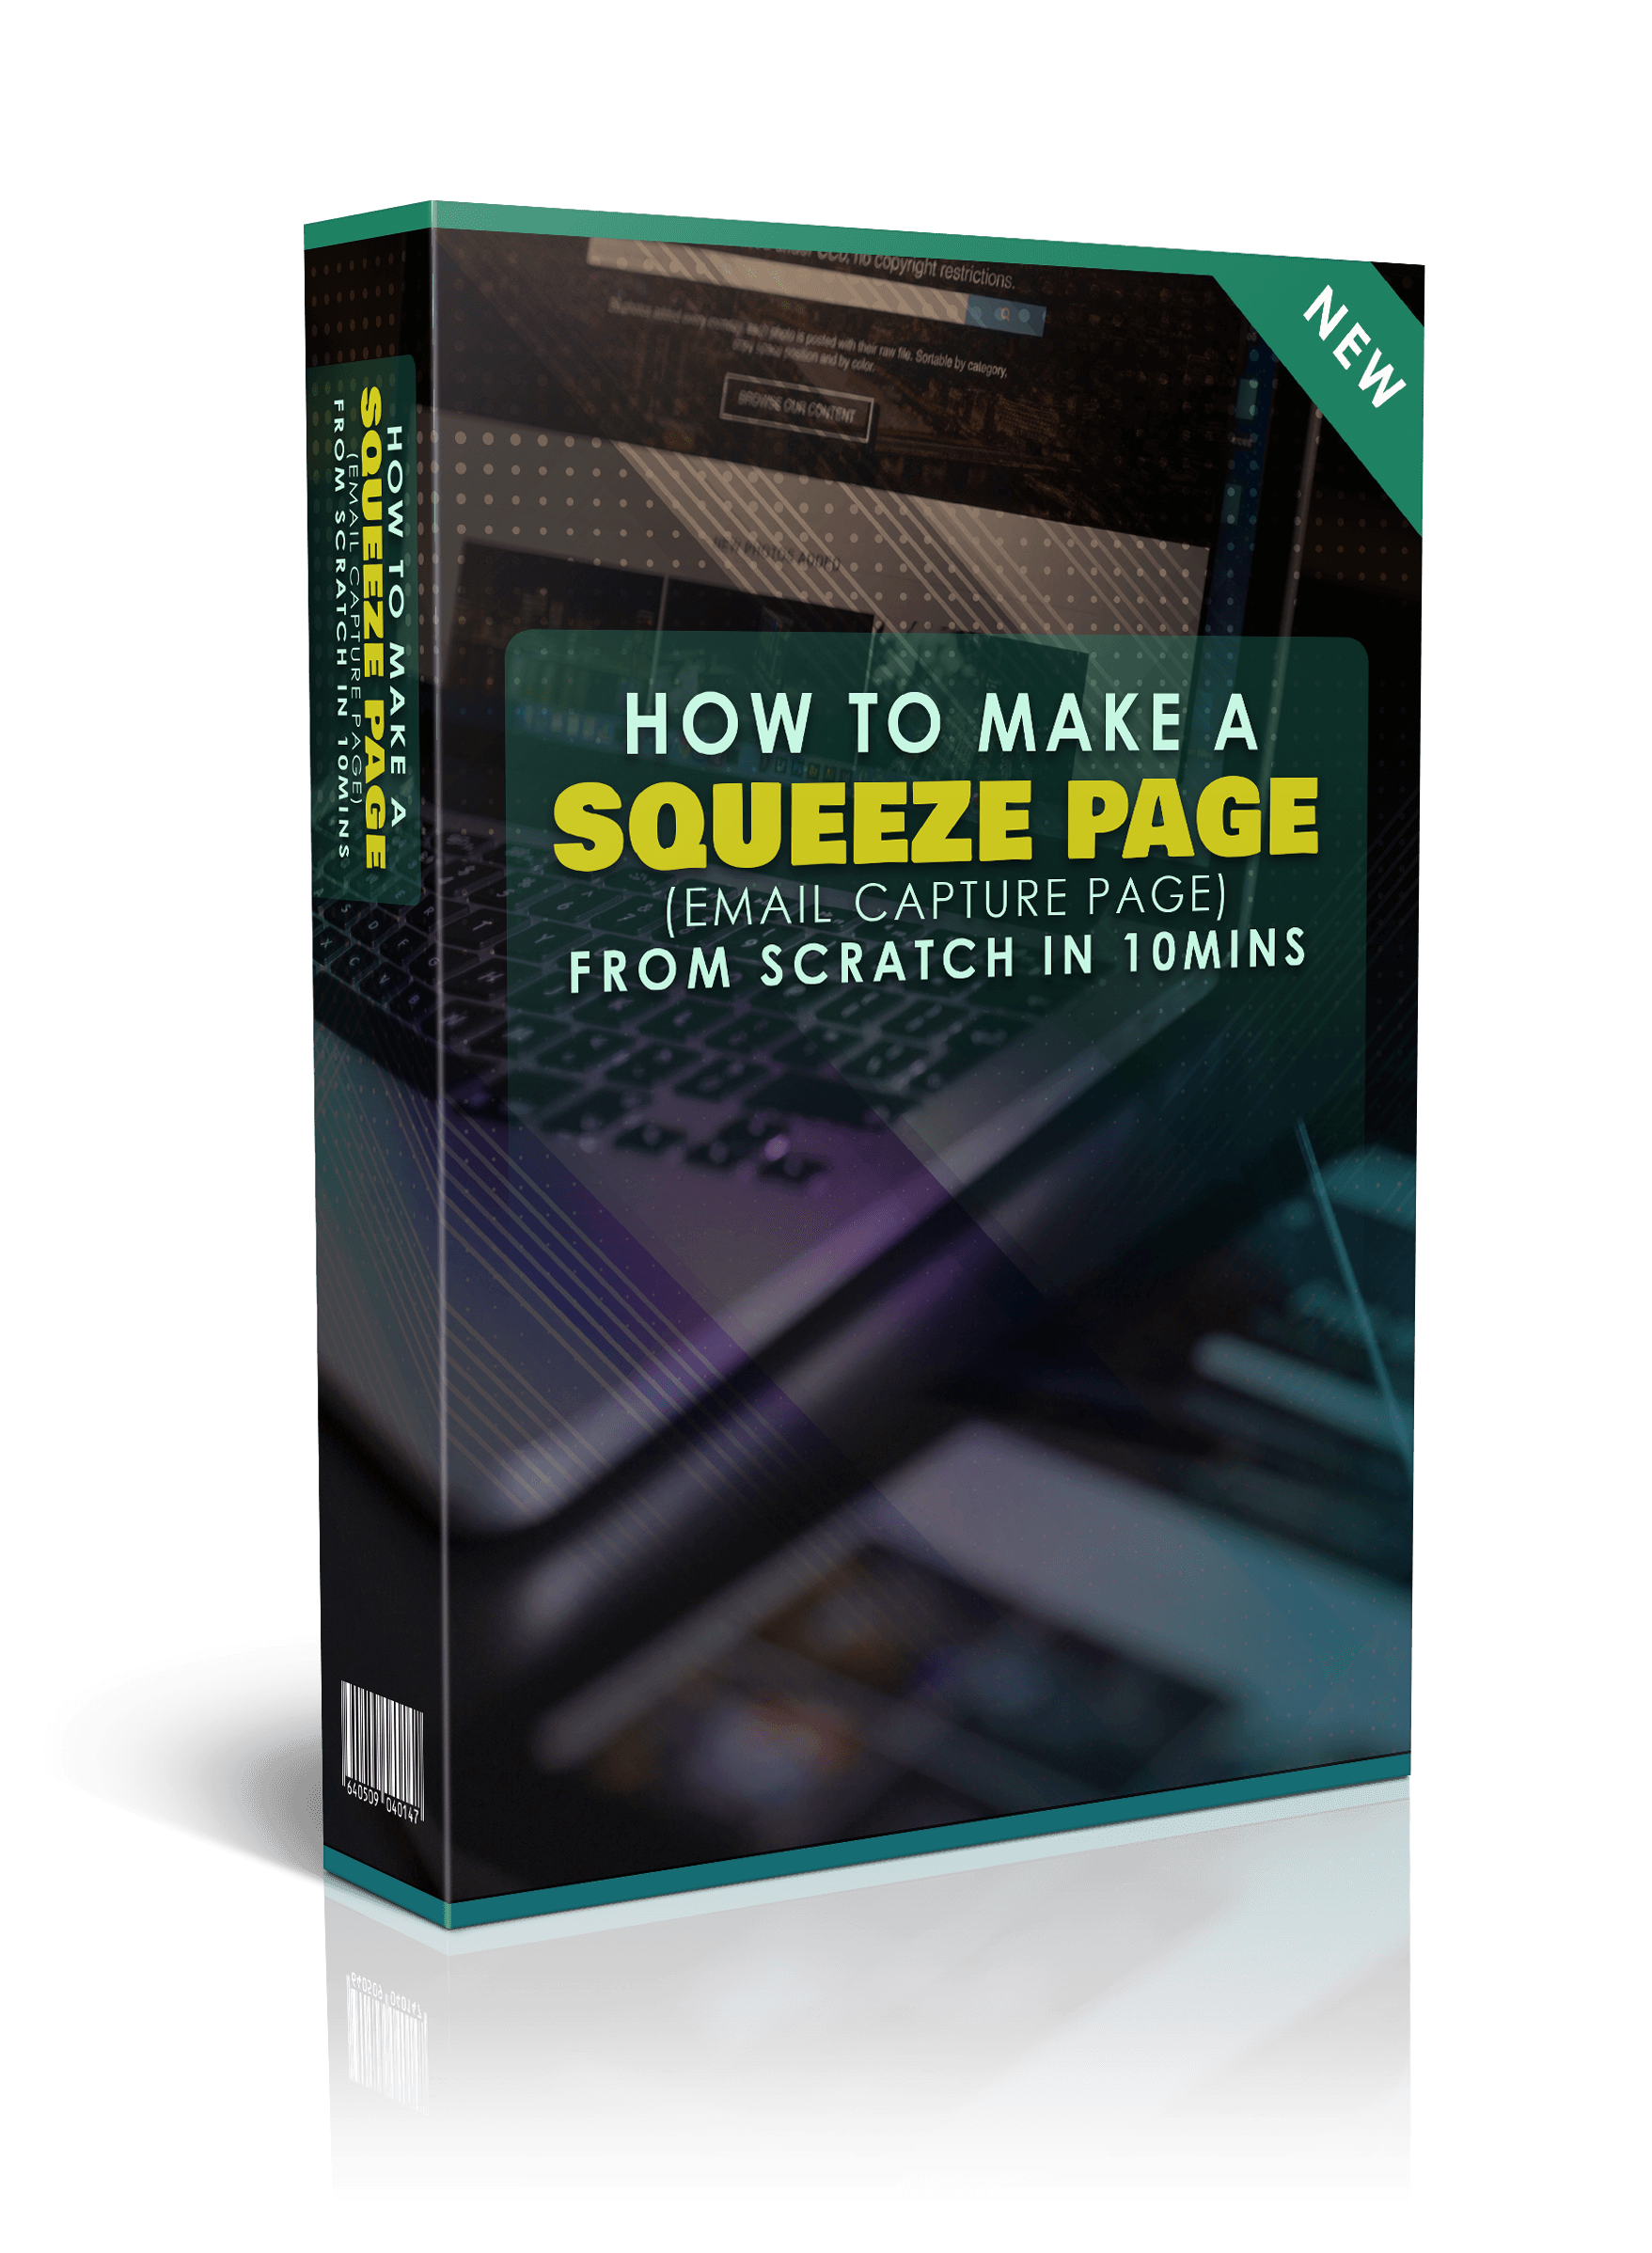 How-To-Make-A-Squeeze-Page-_Email-Capture-Page_-From-Scratch-In-10Mins